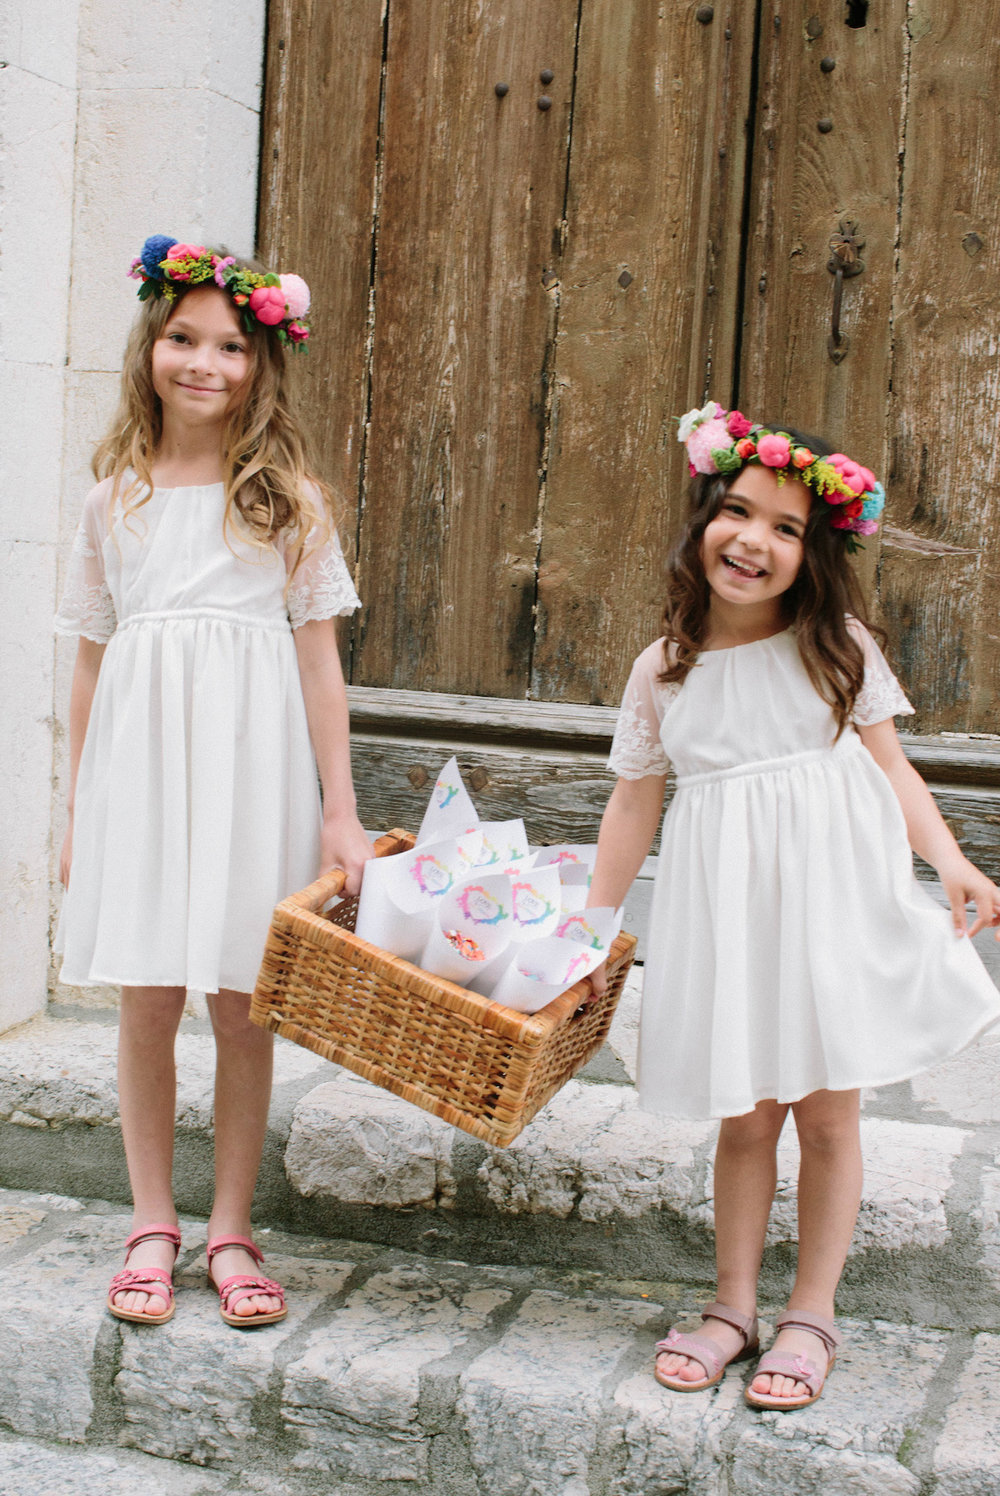 elopement-colorful-©-saya-photography-wedding-photographer-photographe-mariage-saint-paul-vence-rock-my-love-studio-ohlala-french-riviera-les-petits-inclassables-flower-girls